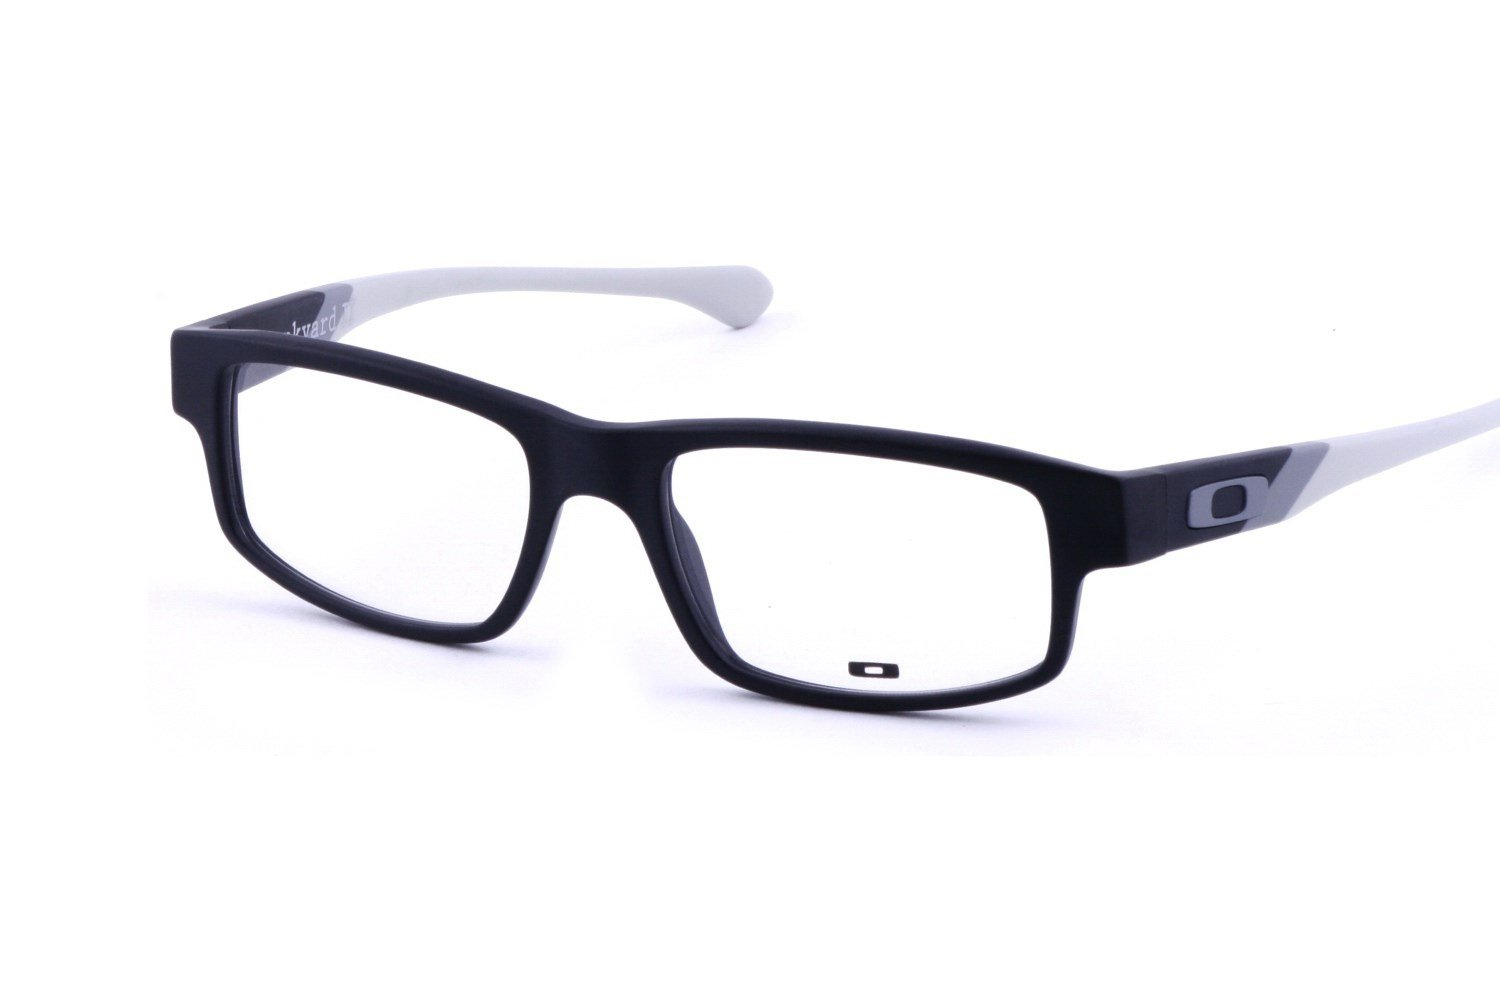 Discount Oakley Glasses Frames - Bitterroot Public Library